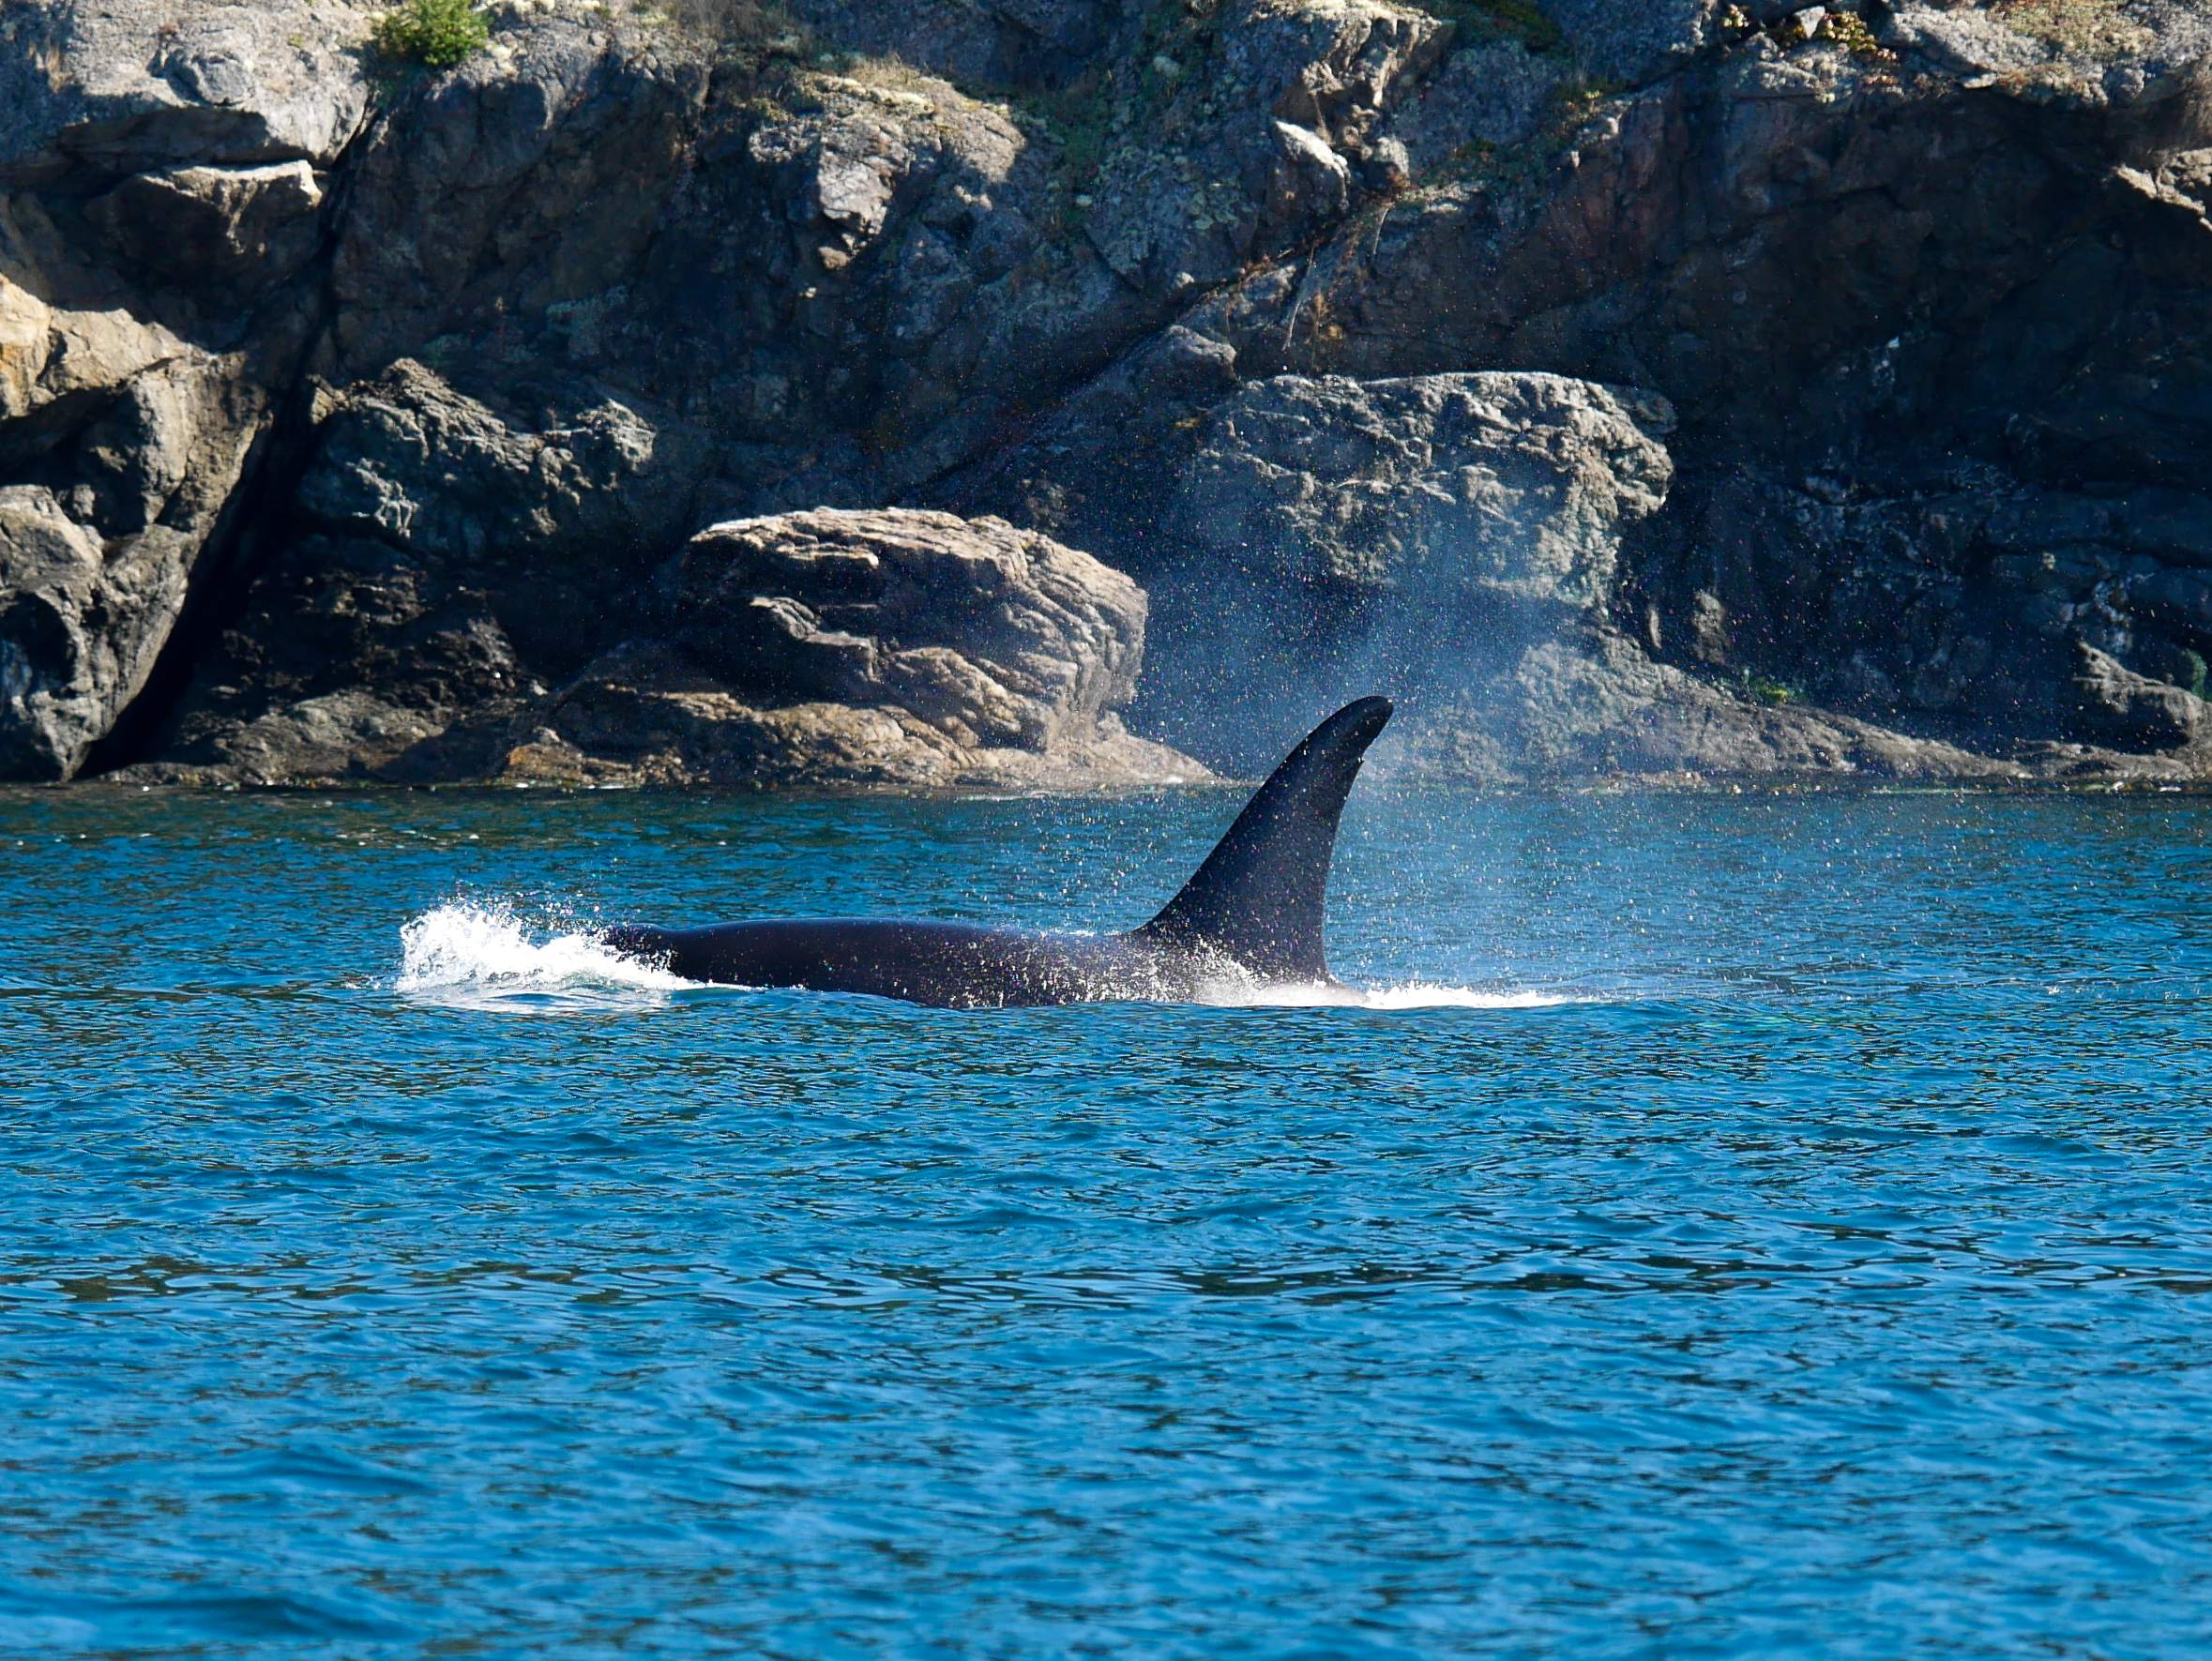 T49A1 (17 years old) surfaces, check out the nick on the top of the dorsal fin for help in identification. Photo by Rodrigo Menezes.